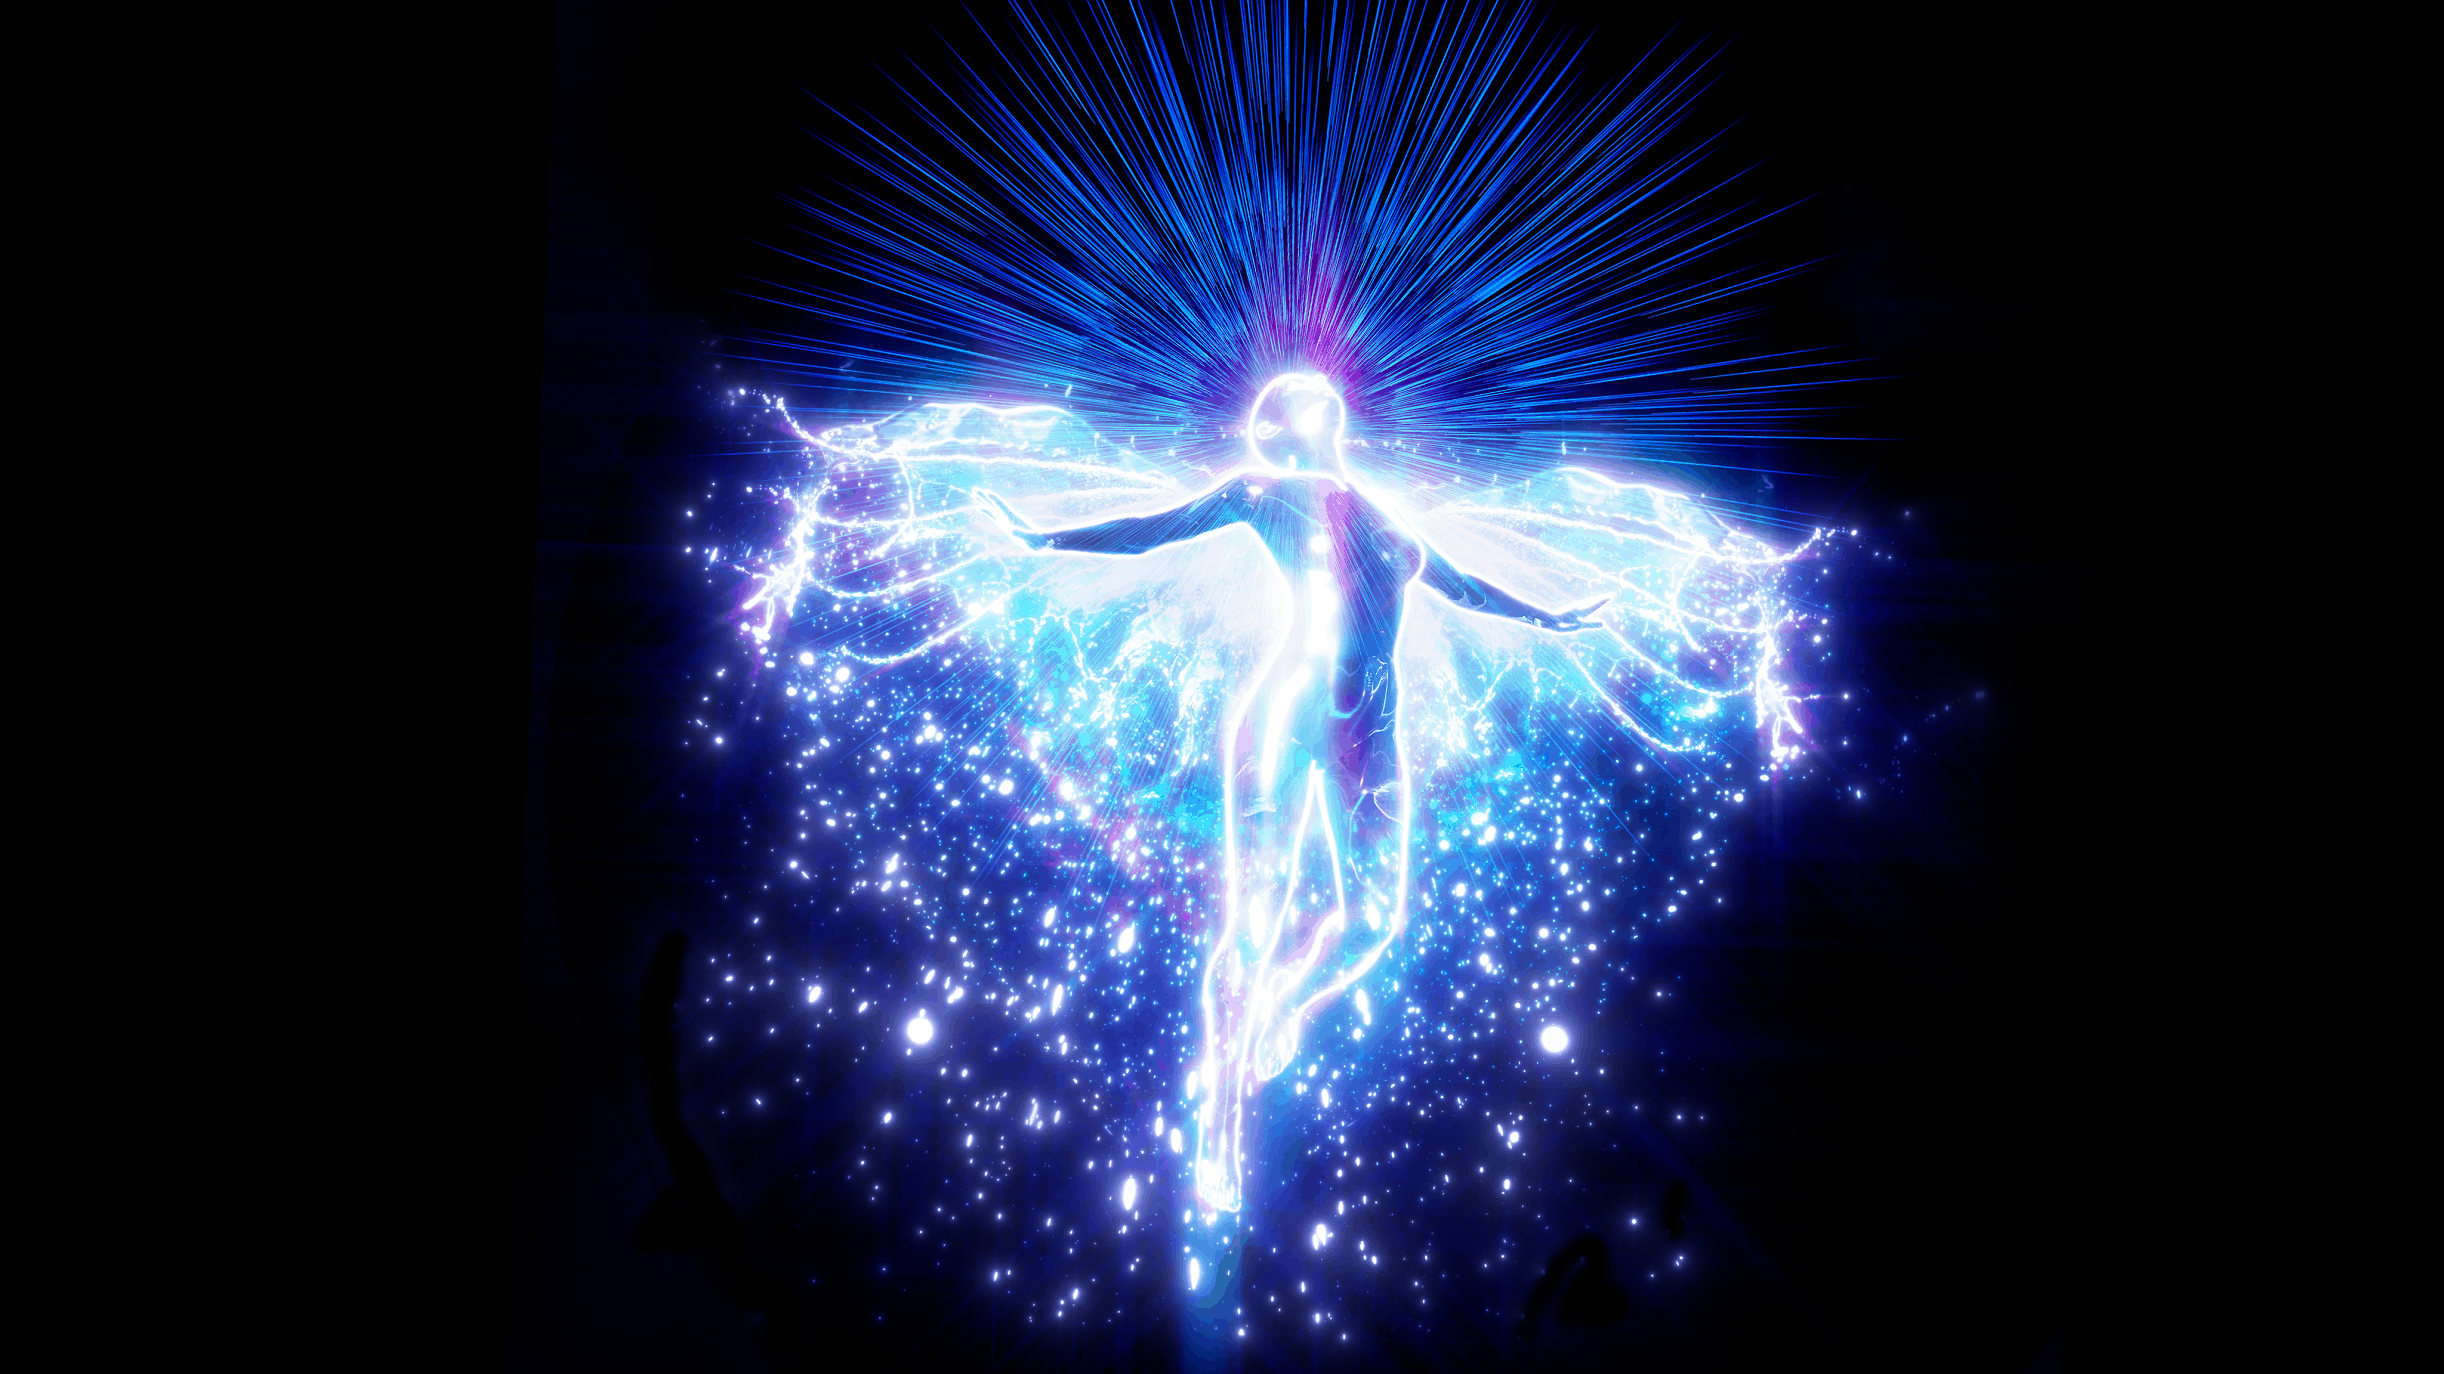 555 Angel Number Meaning and Symbolism Explained, An Angel Radiating with Light